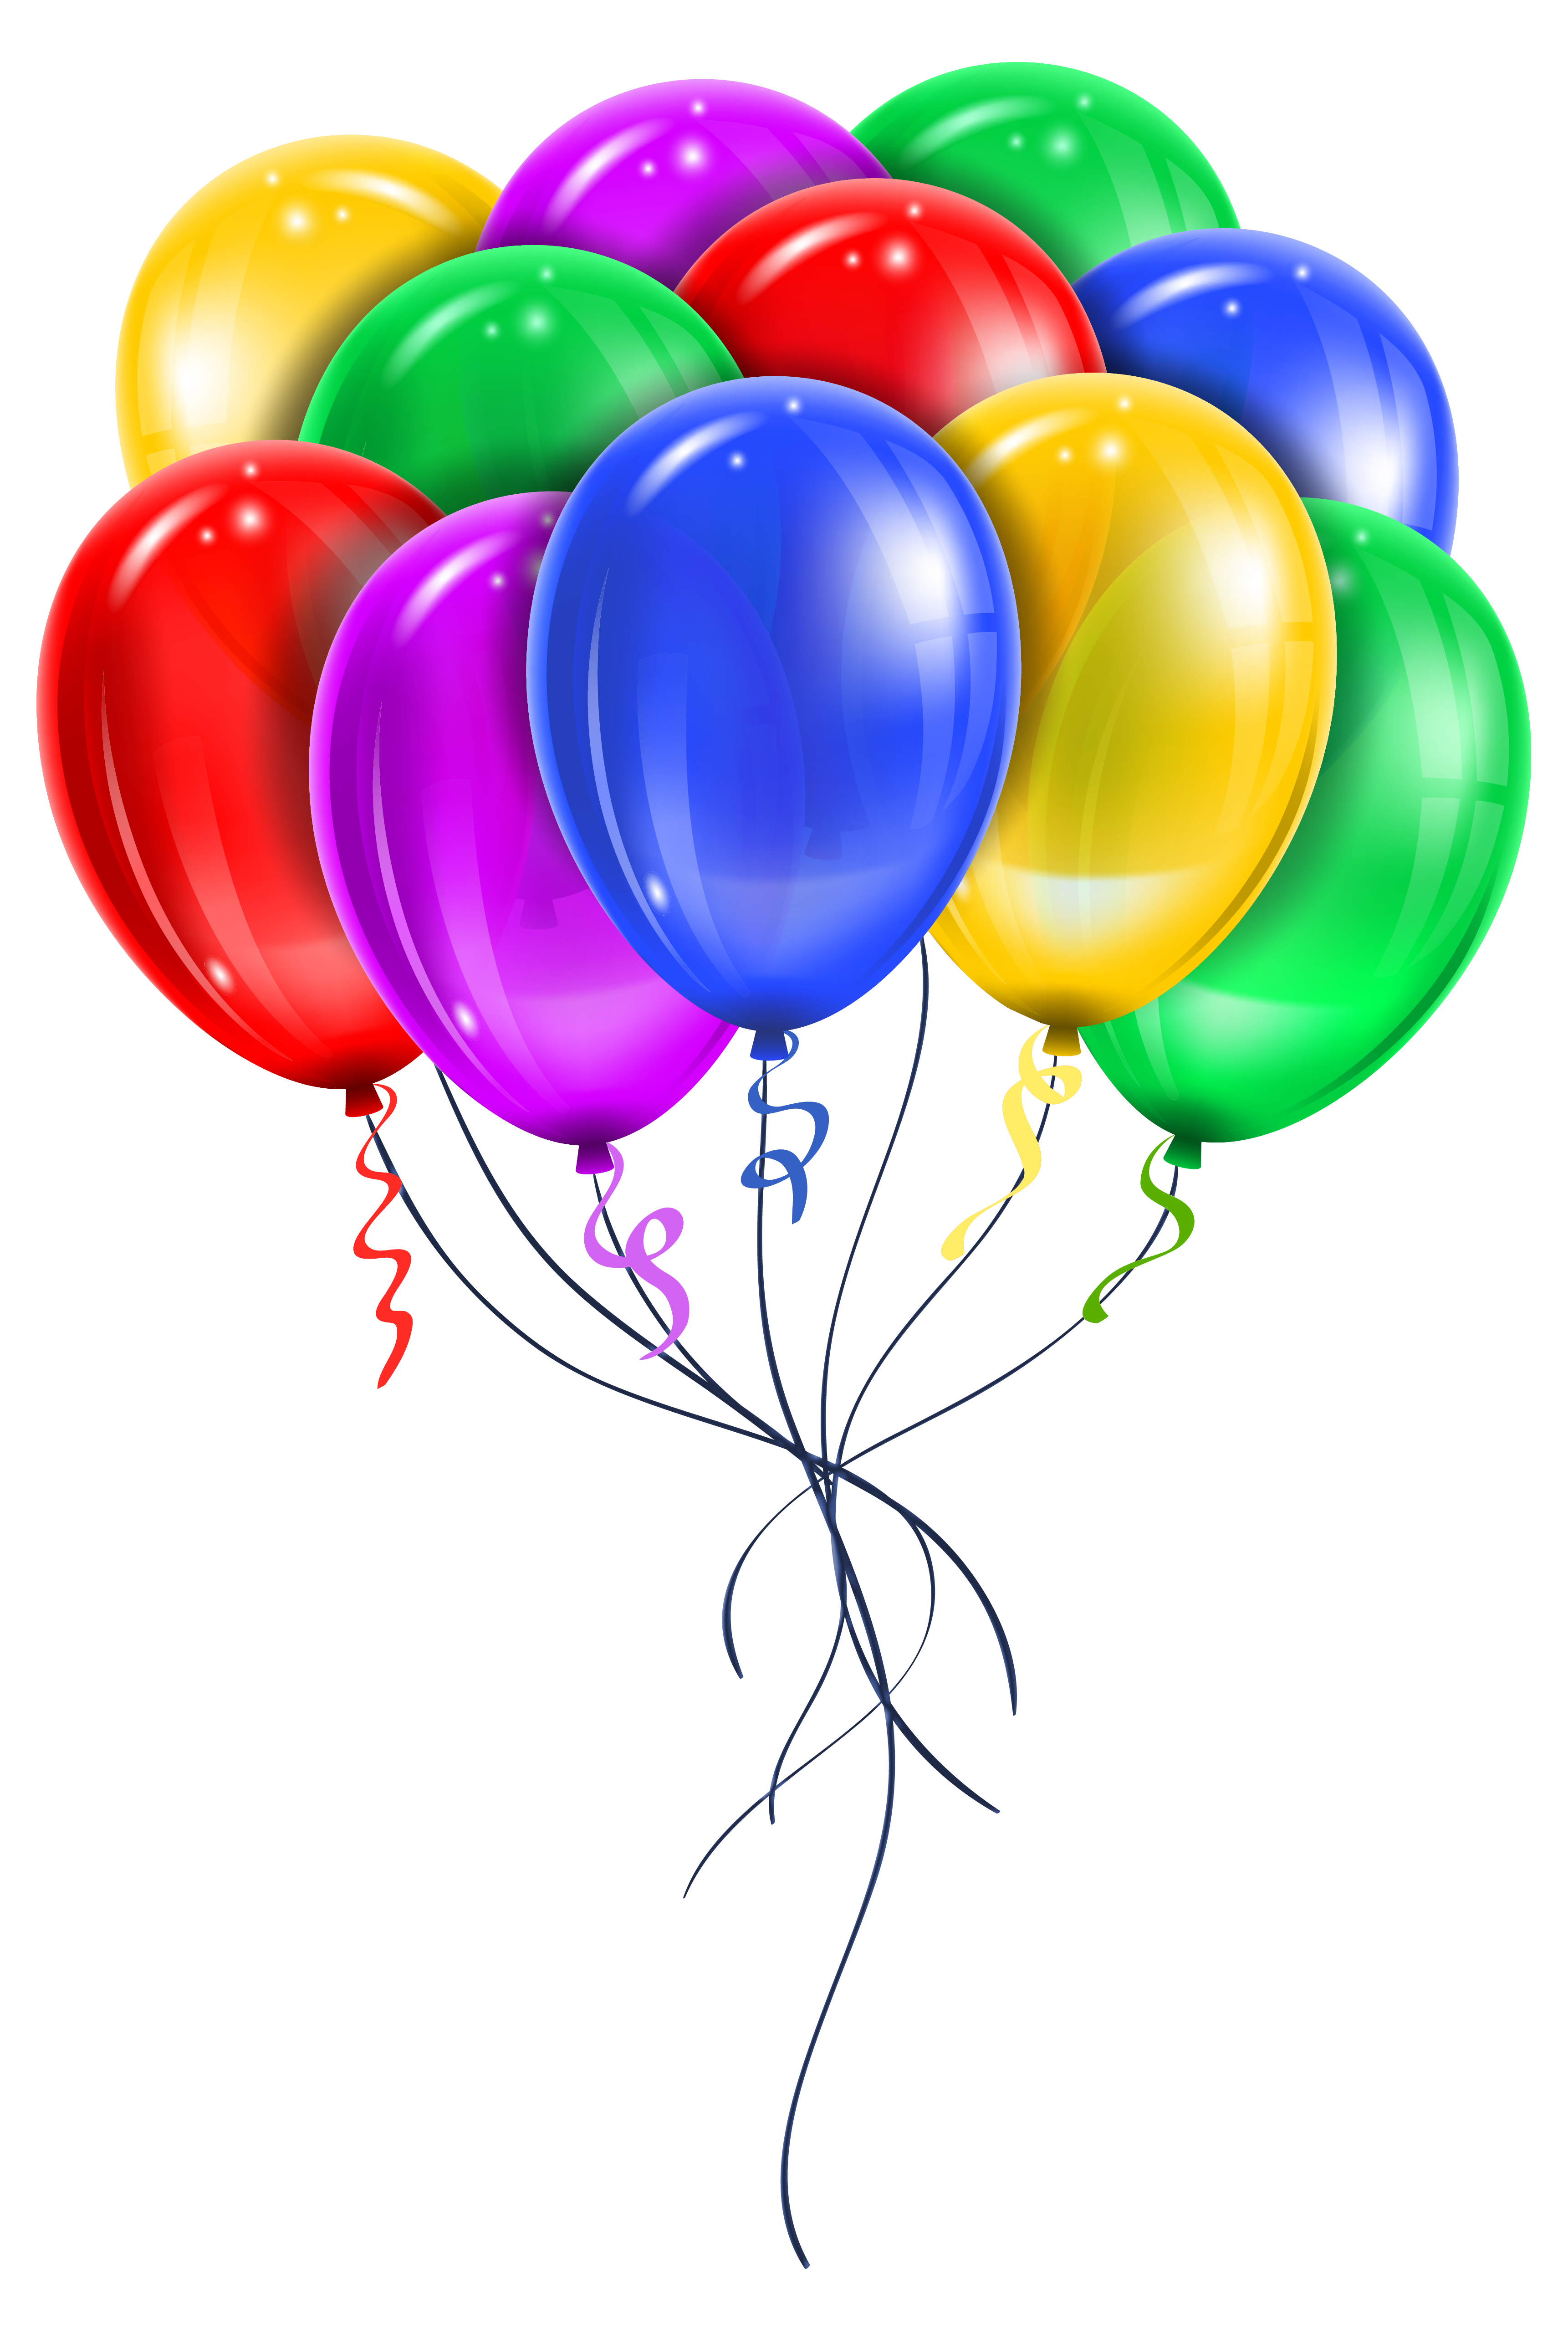 Balloon PNG Images & Balloon Transparent Clipart - Free ...